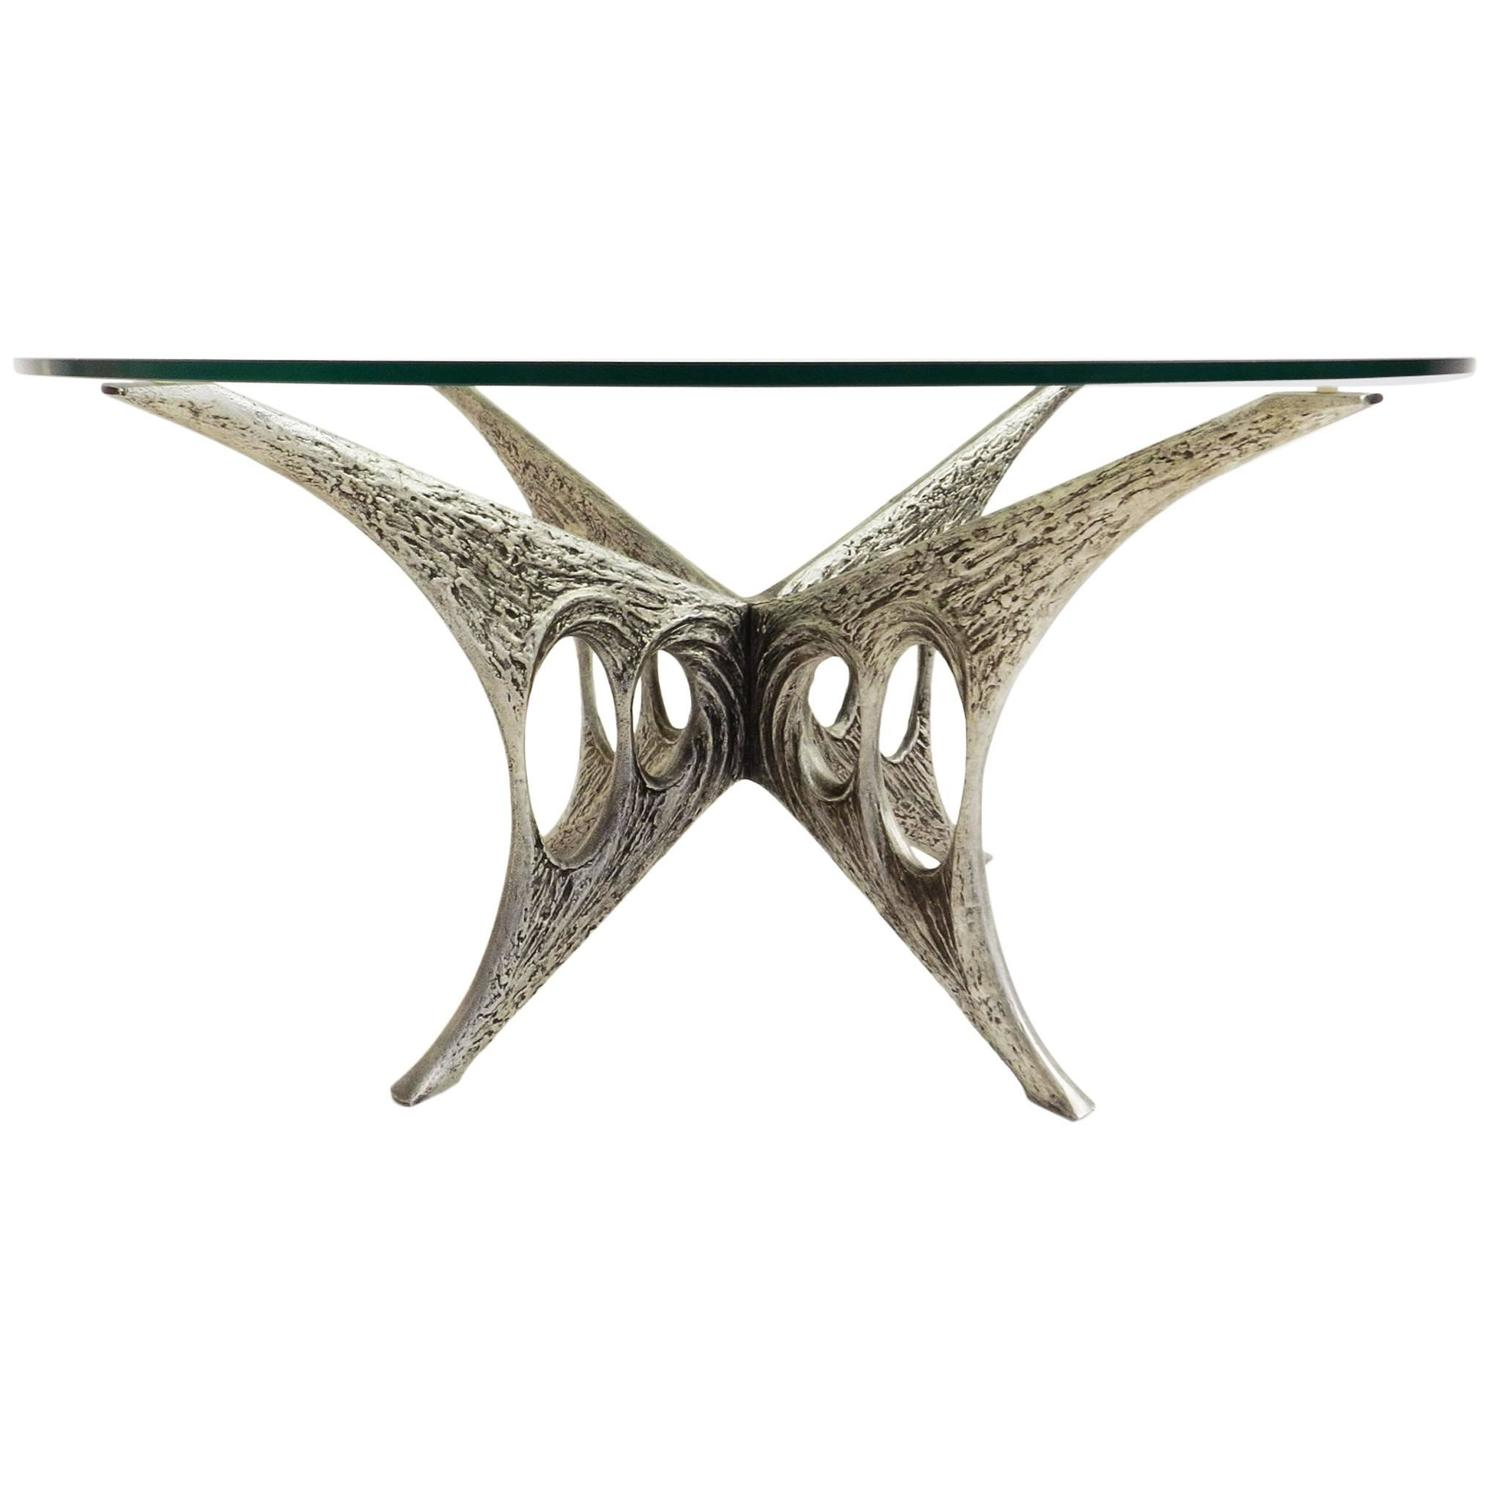 Brutalist Sculptural Coffee Table by Willy Ceysens at 1stdibs